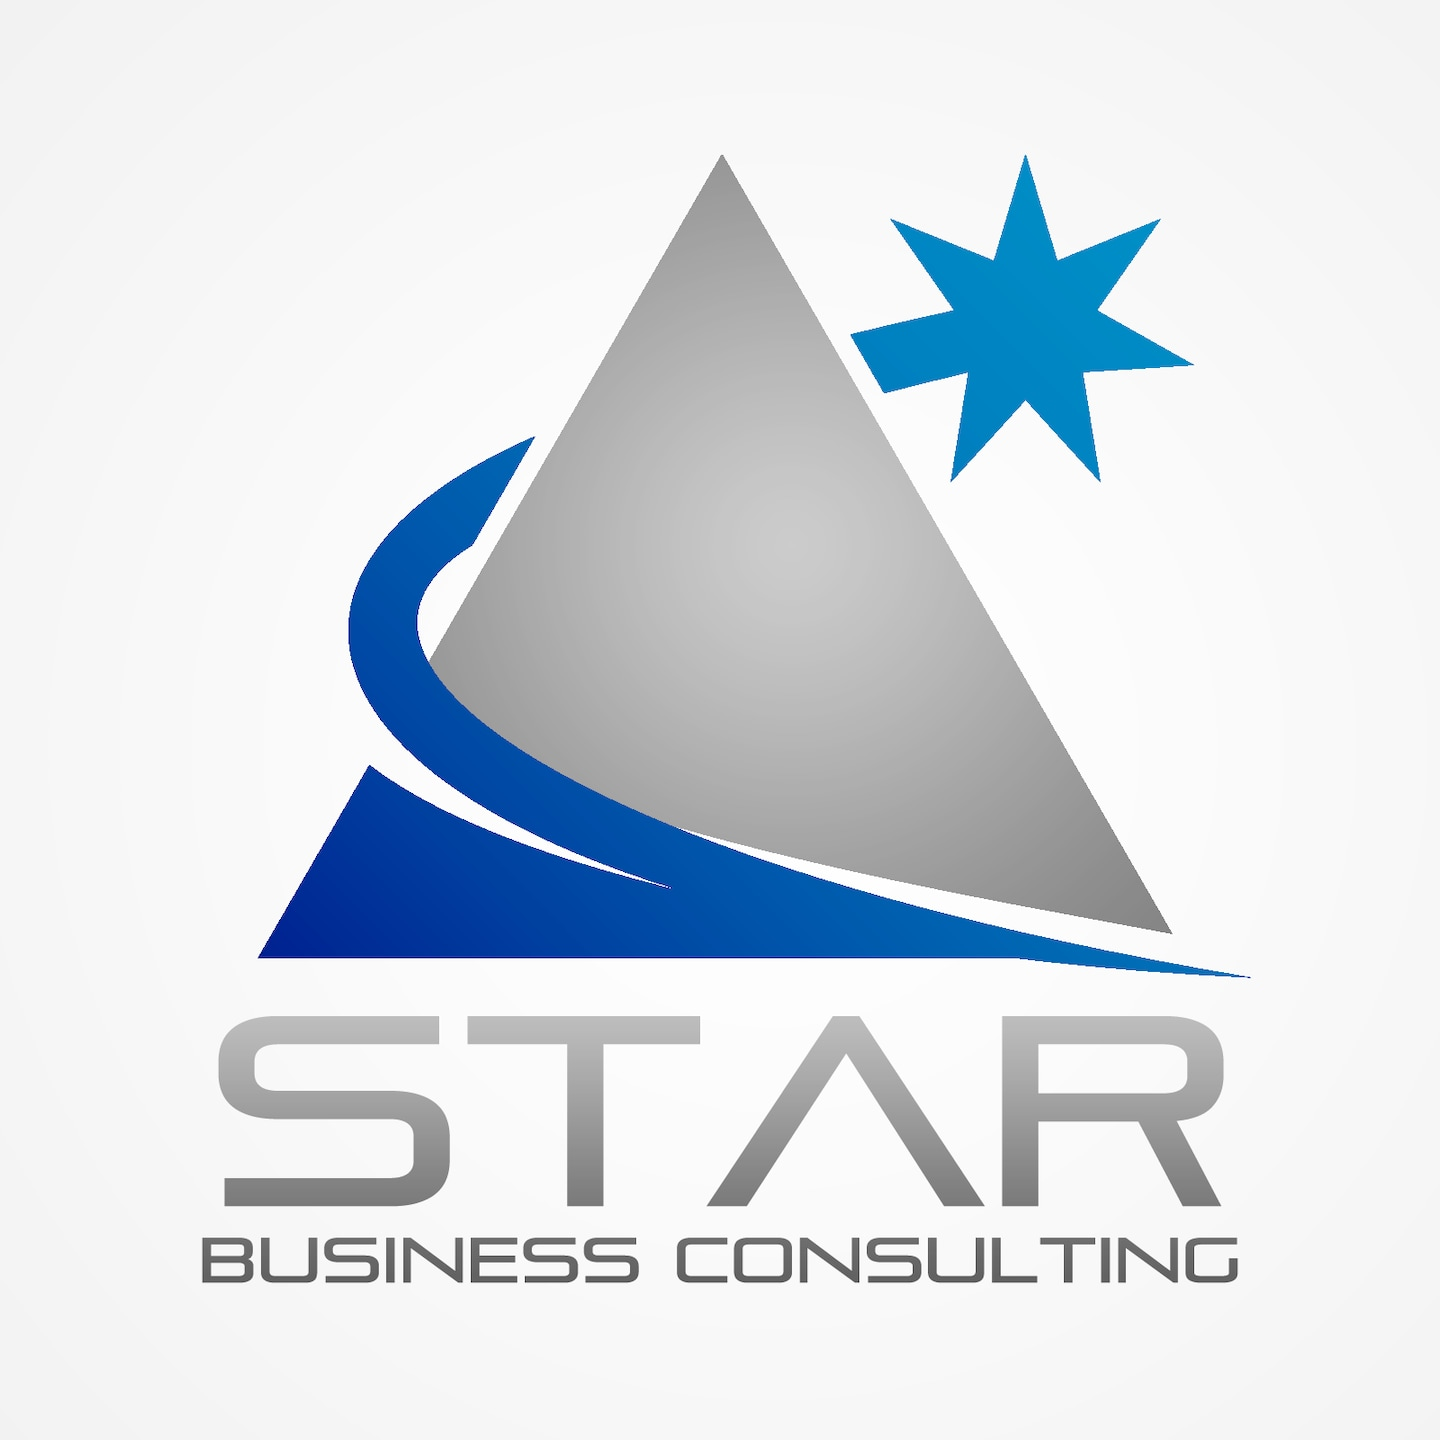 Star Business Consulting LLC